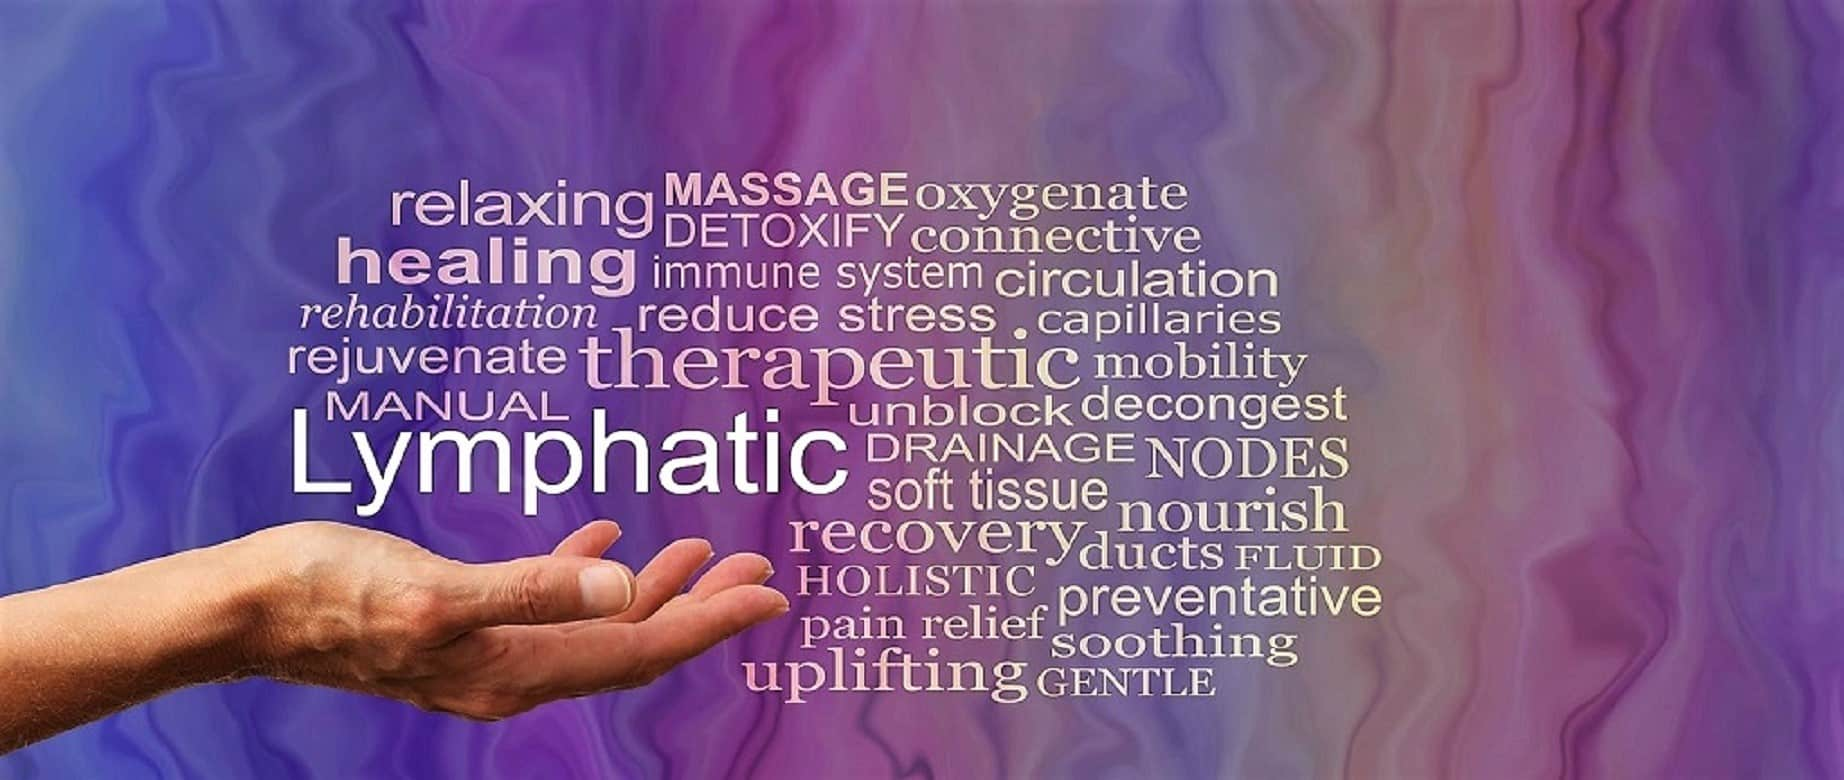 Manual lymphatic massage